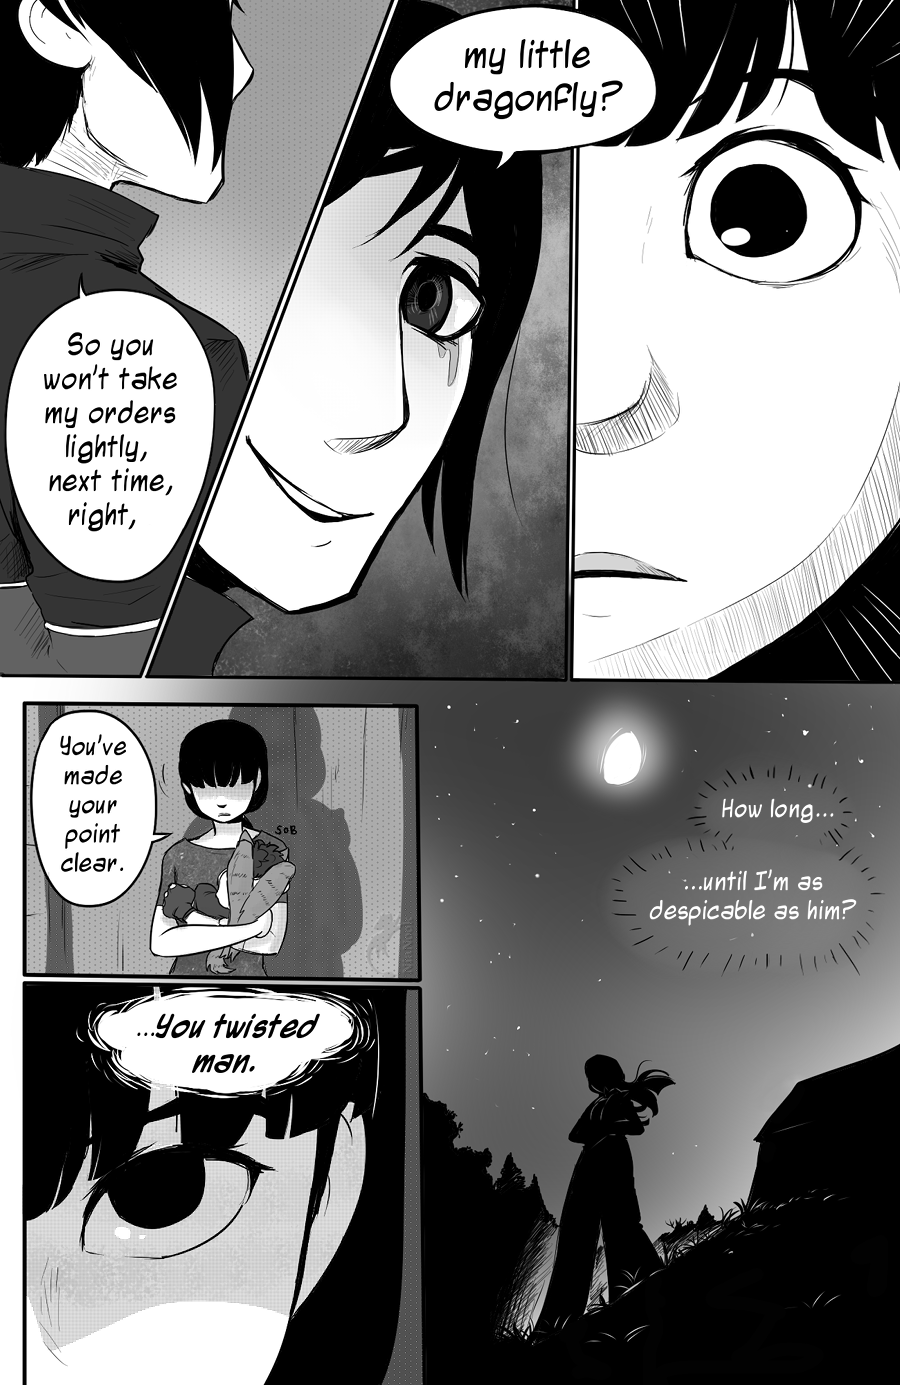 Page 29 (Book 3)